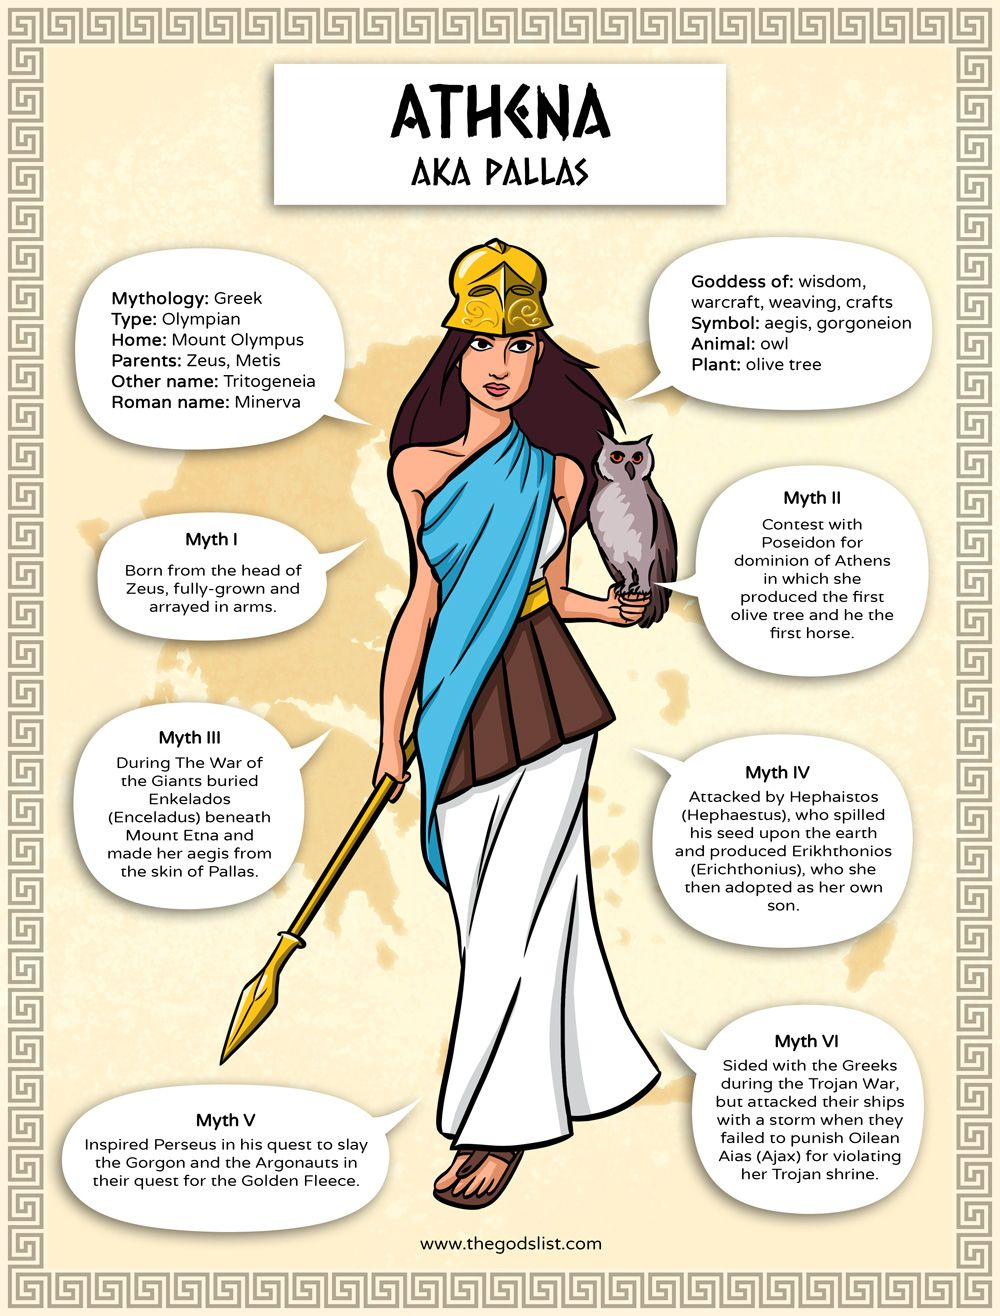 pallas mythology athena the warcraft goddess top 6